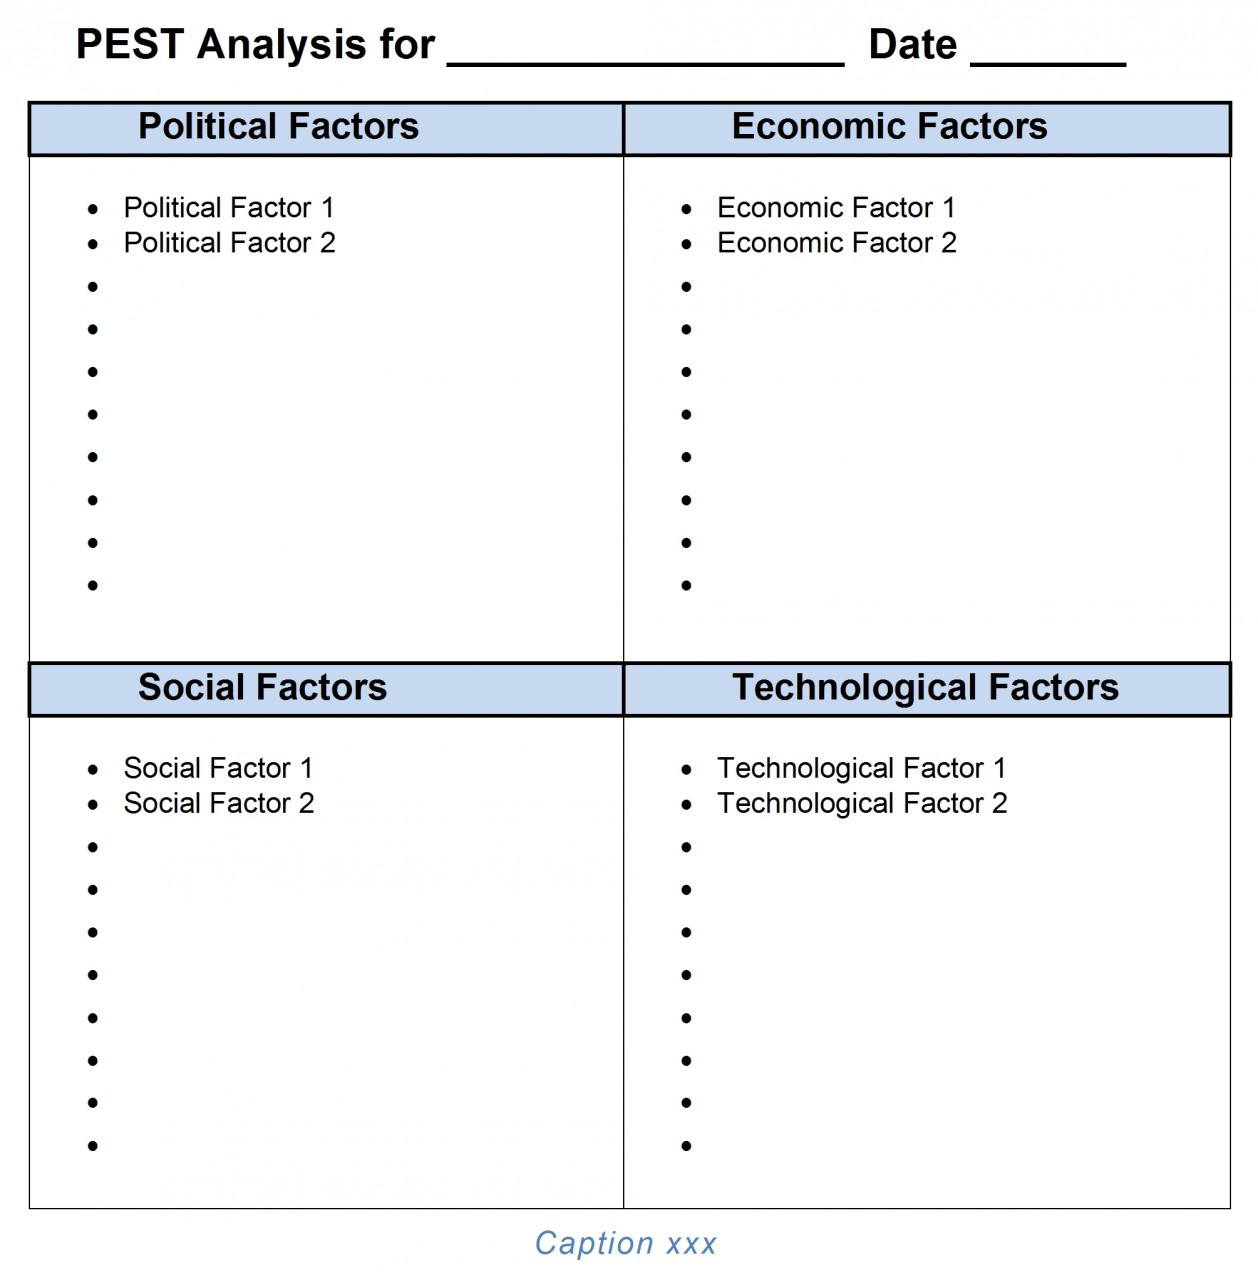 Pest analysis template word 2007 2010 2013 for Pestel analysis template word